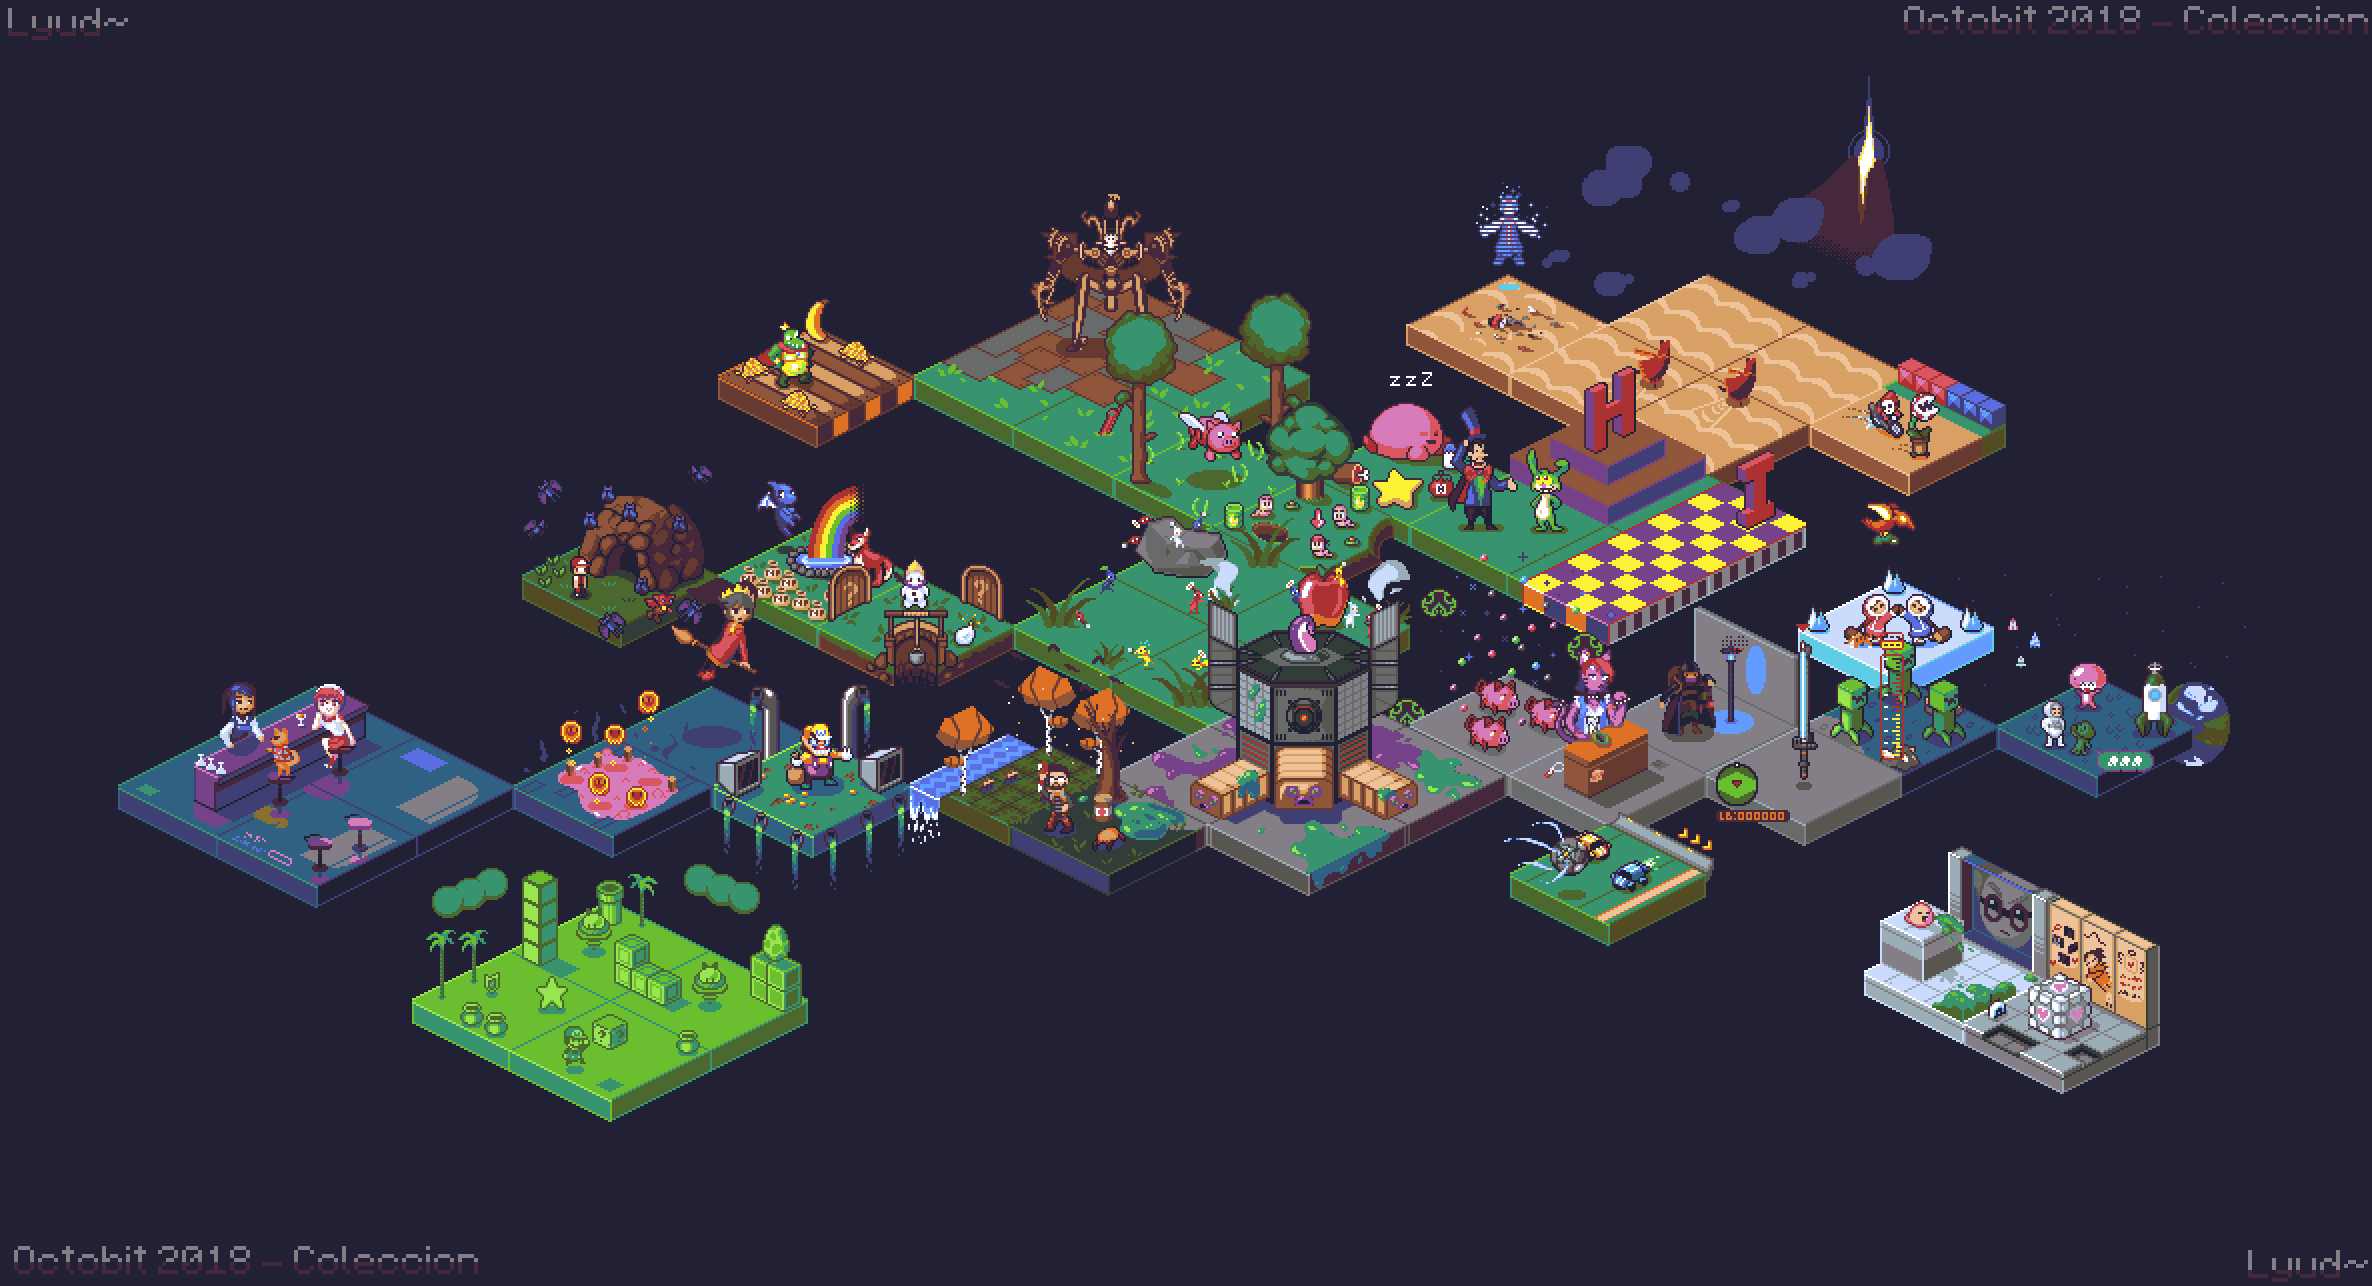 Octobit 2018 - Isometric View